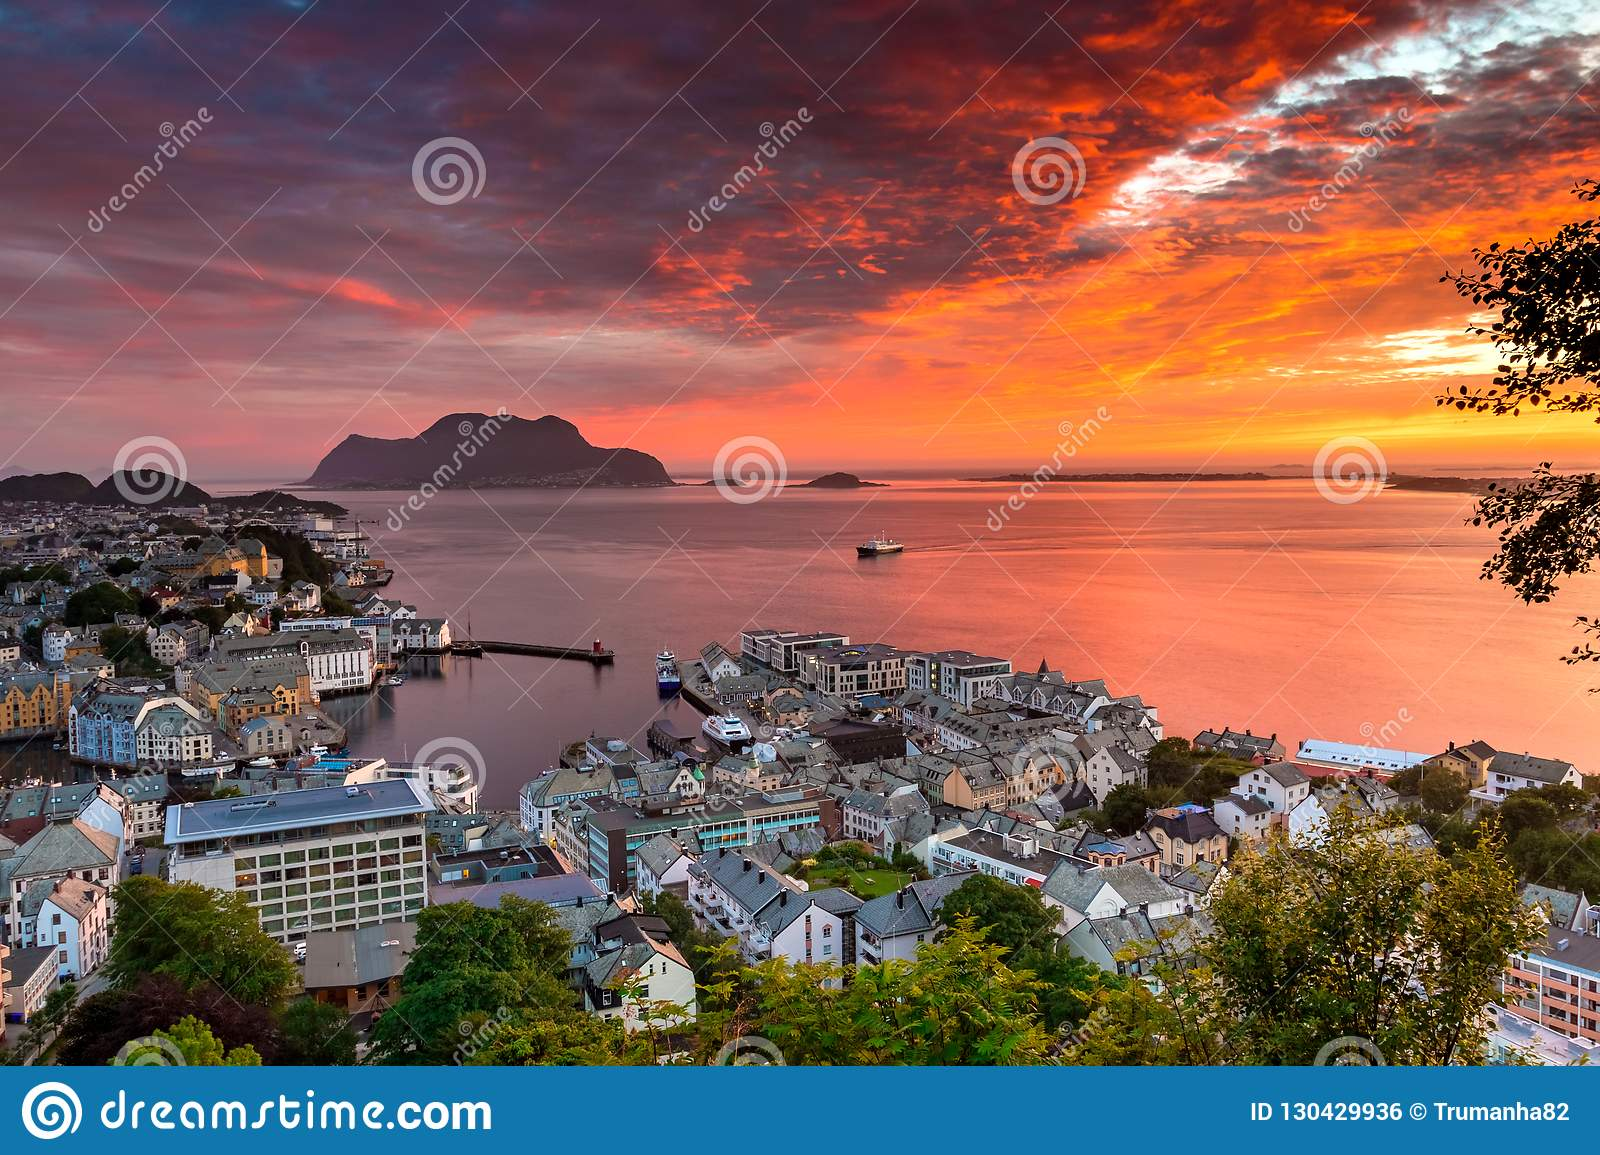 City Seascape with Aerial View of Alesund Center, Islands and Atlantic Ocean at Gorgeous Sunset